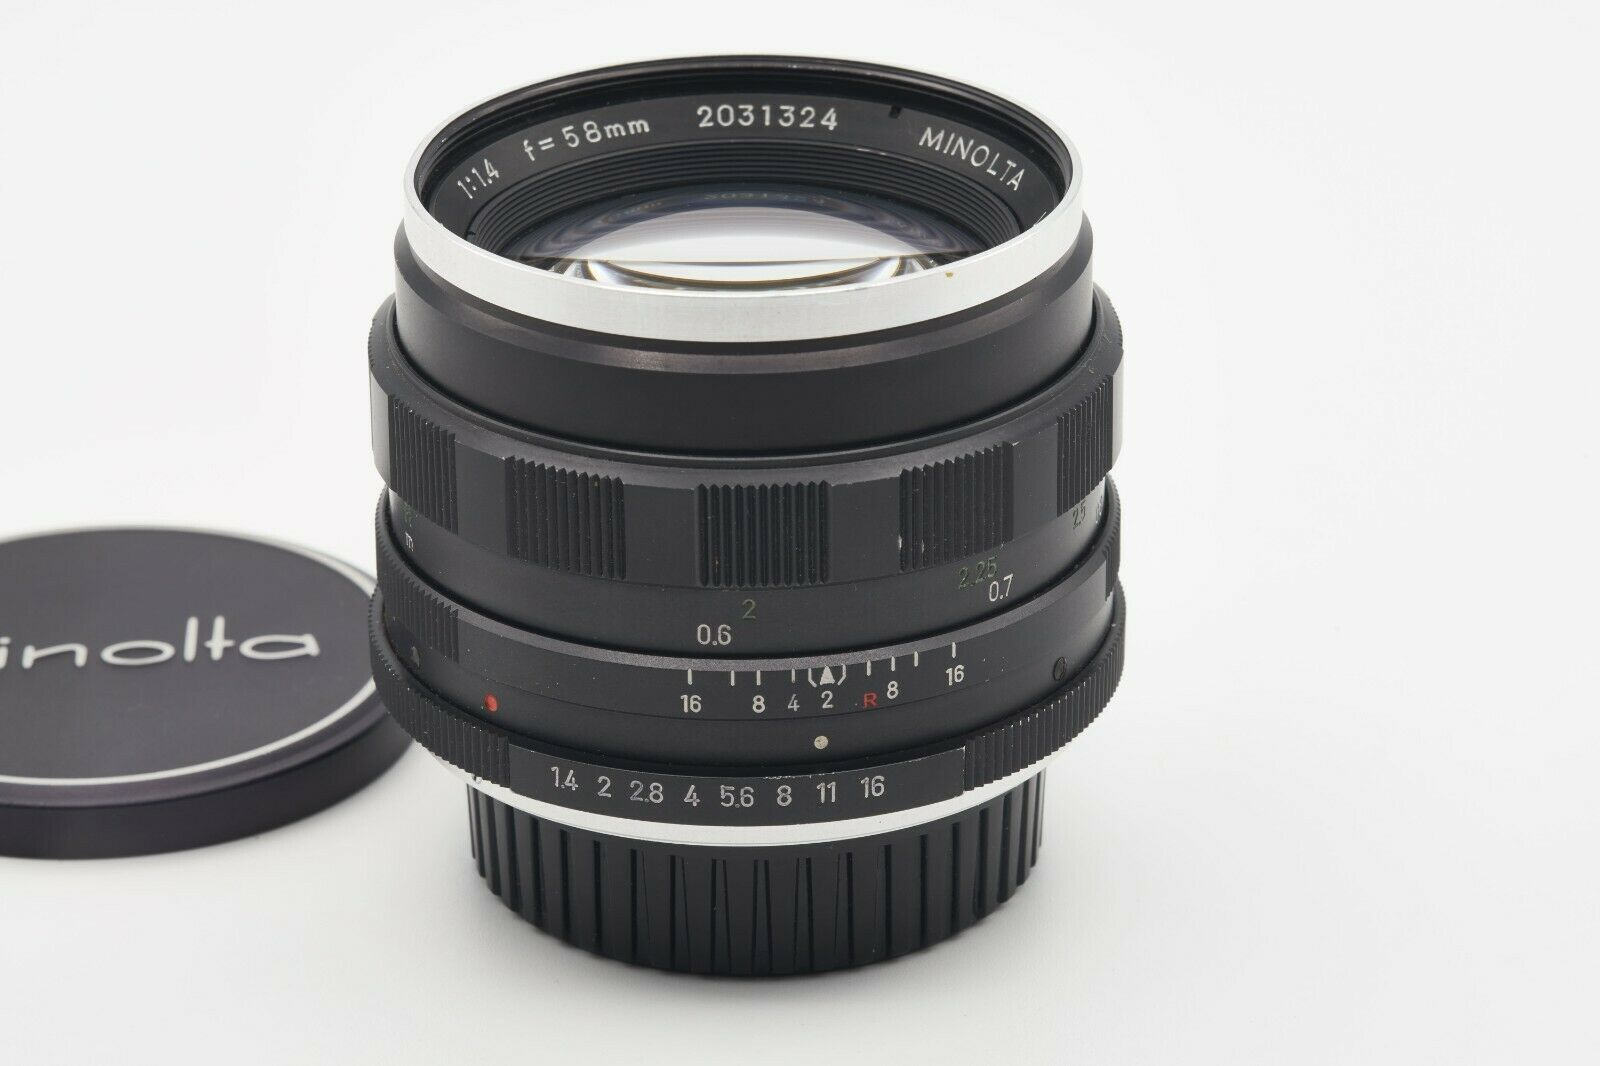 Minolta Auto Rokkor-PF 58mm F1.4 Manual Focus Prime MD/MC Mount - $61.95